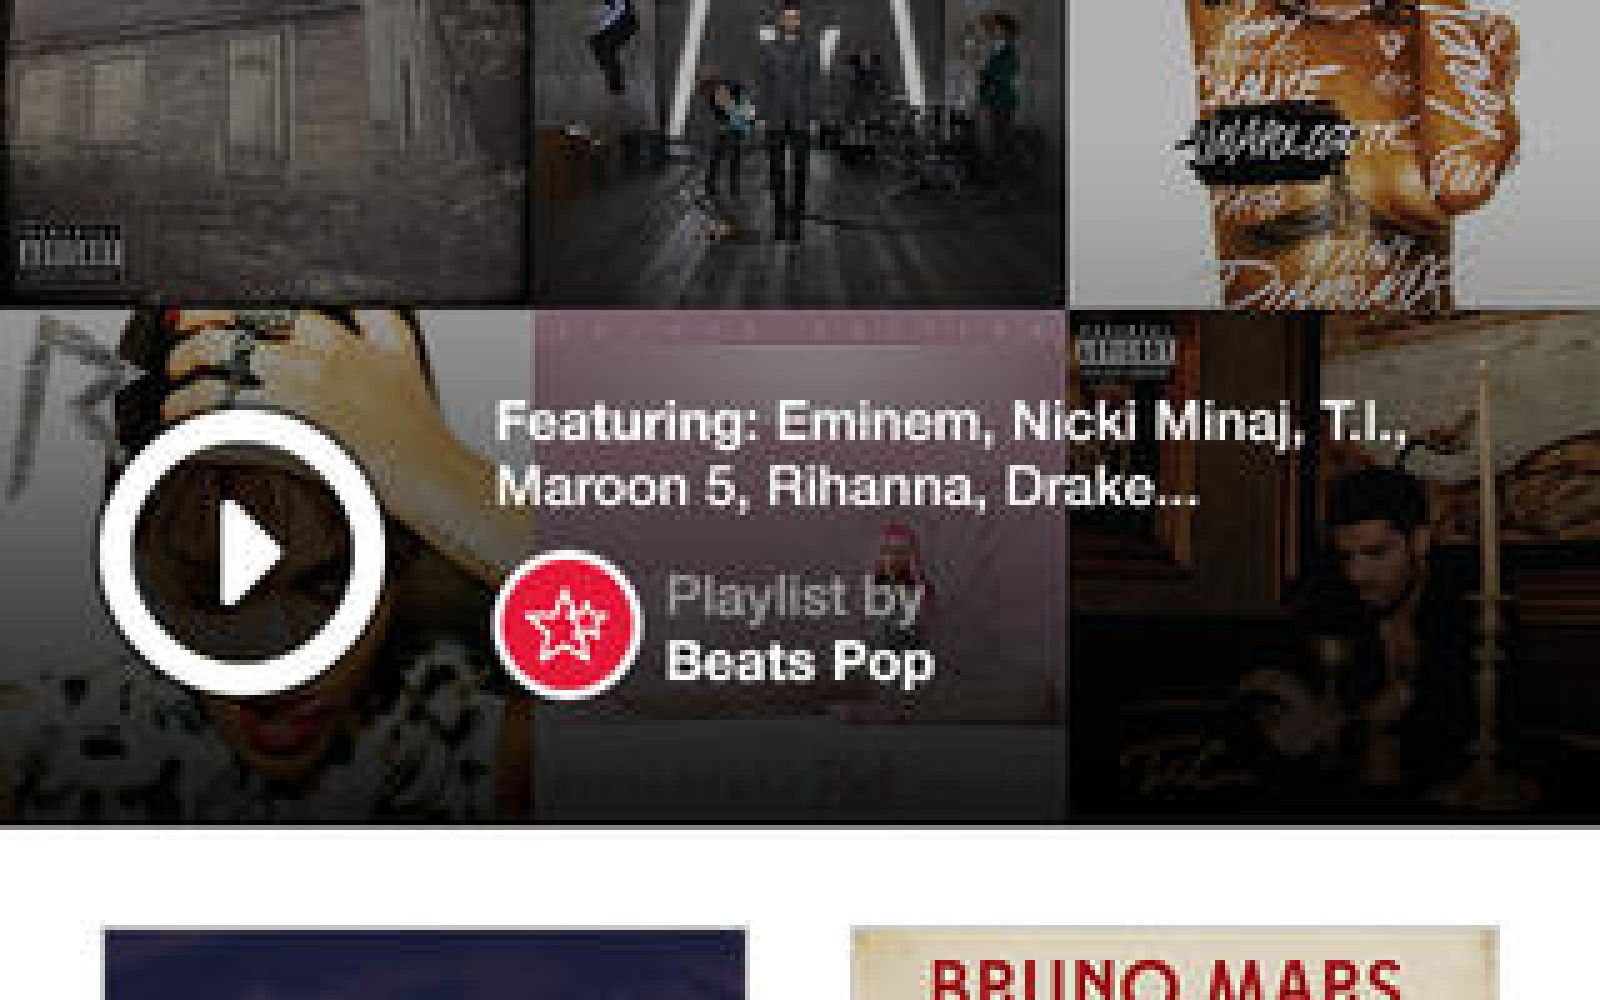 beats music ios app drops yearly pricing to 99 extends free trial as apple confirms deal 9to5mac. Black Bedroom Furniture Sets. Home Design Ideas